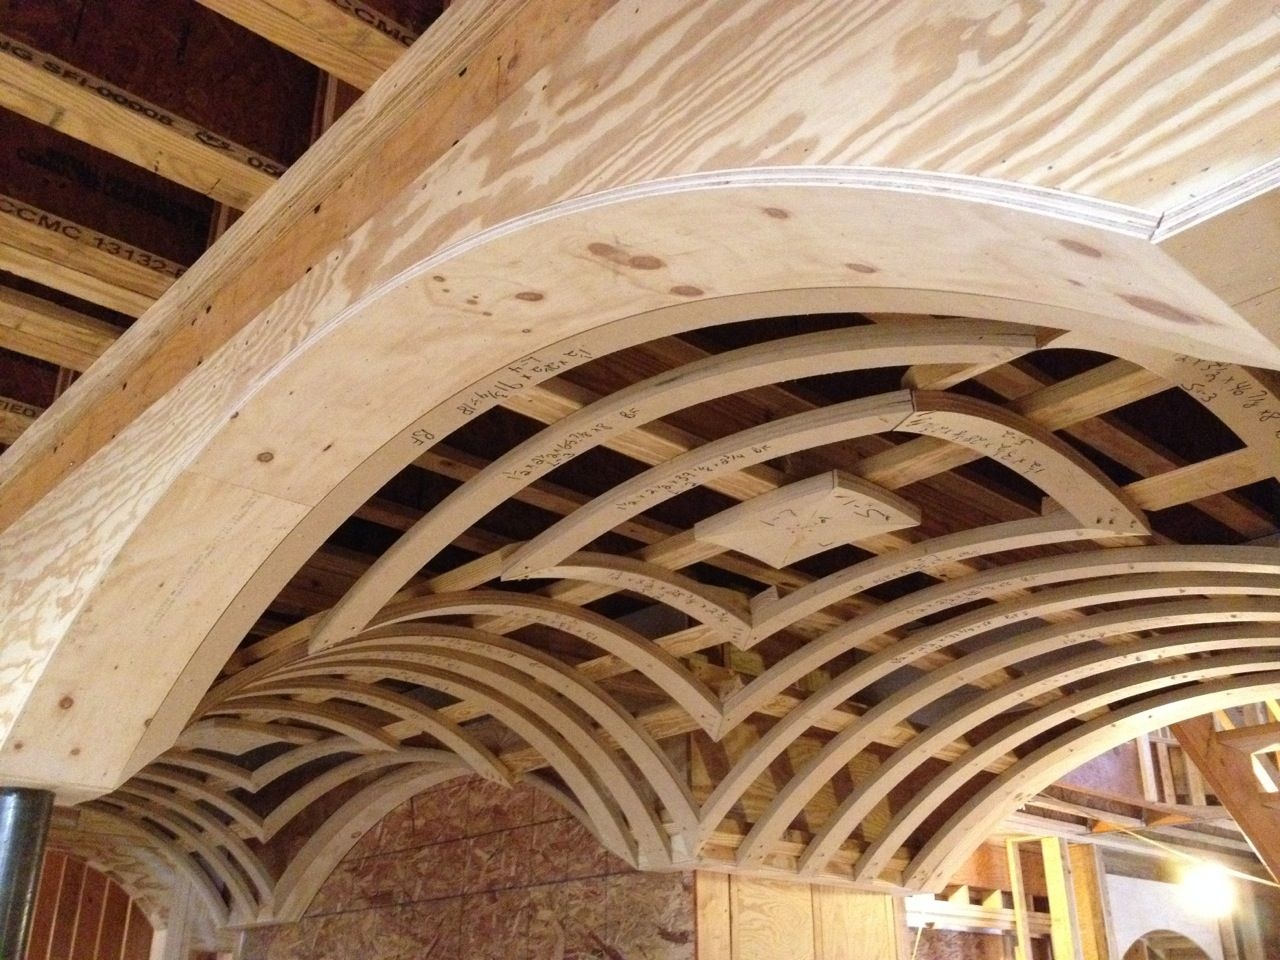 complex and meticulous carpentry. this is a groin vault ceiling